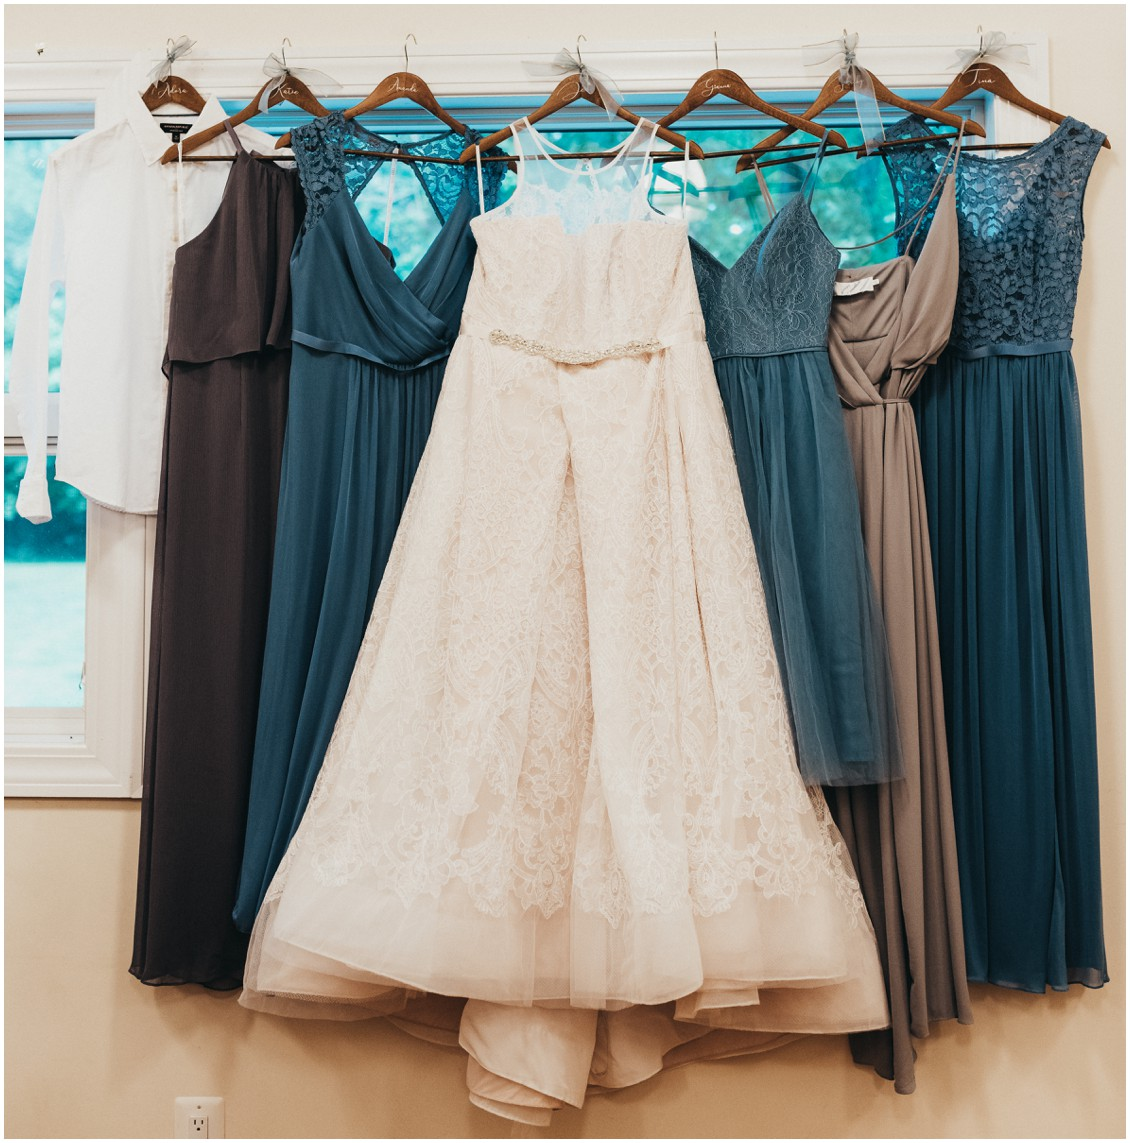 Wedding dress and bridesmaid gowns. | My Eastern Shore Wedding |